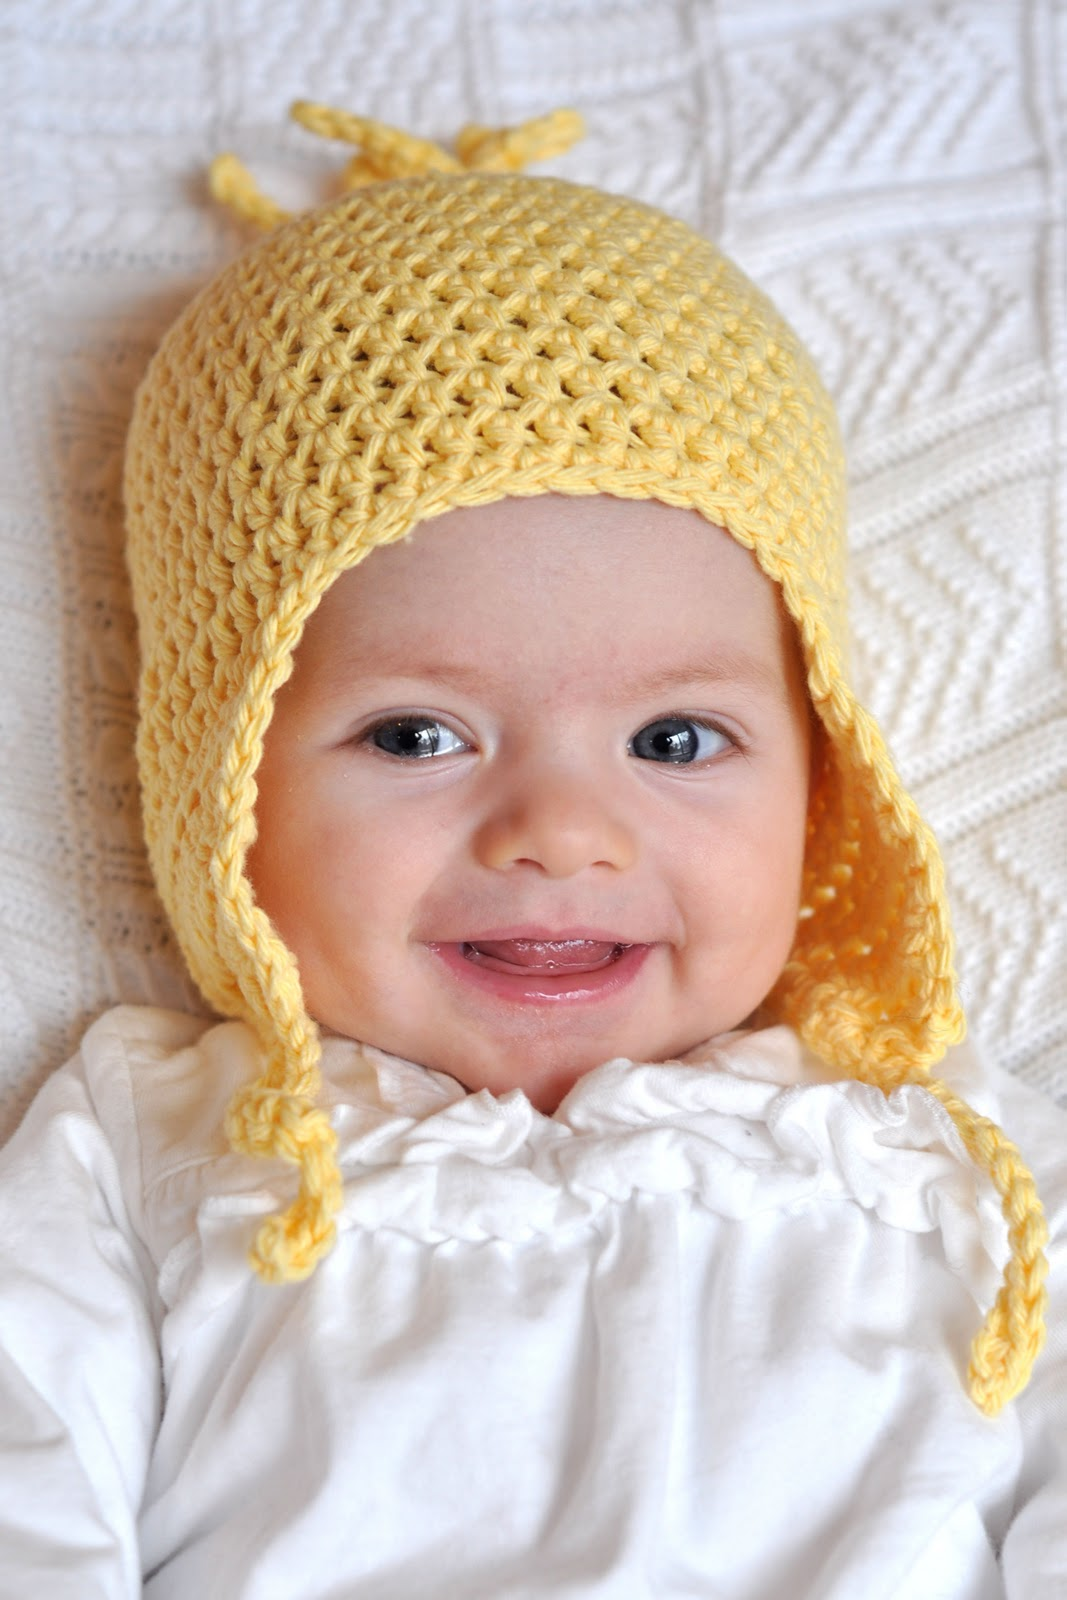 Crochet Pattern For Newborn Hat With Ear Flaps : Aesthetic Nest: Crochet: Flippy Floppy Earflap Hat for ...